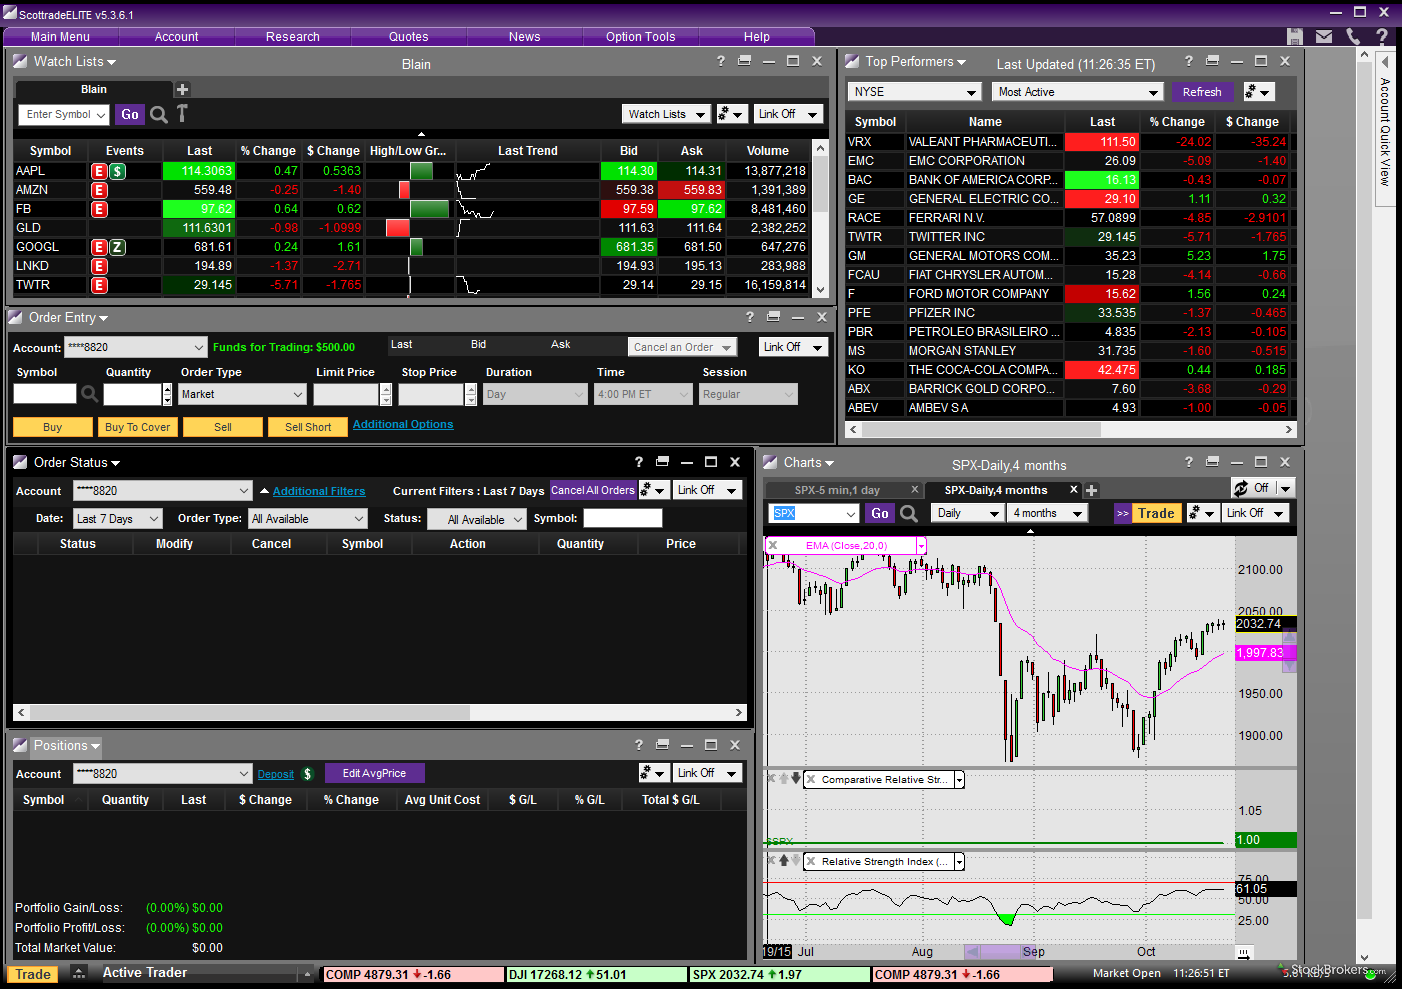 Uncovered option trading scottrade